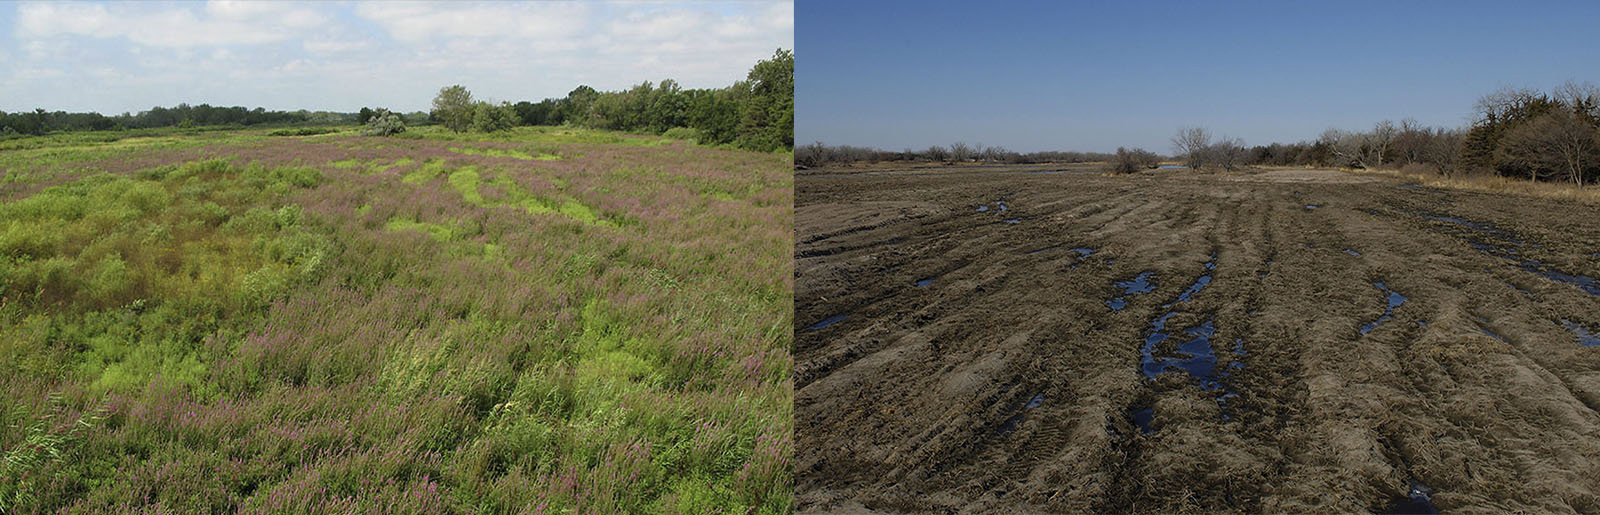 A dangerous beauty, purple loosestrife chokes the river channel east of Kearney. Several months later (right), the same view of the river channel after it has been mechanically cleared to knock back this invasive species. (Michael Forsberg)